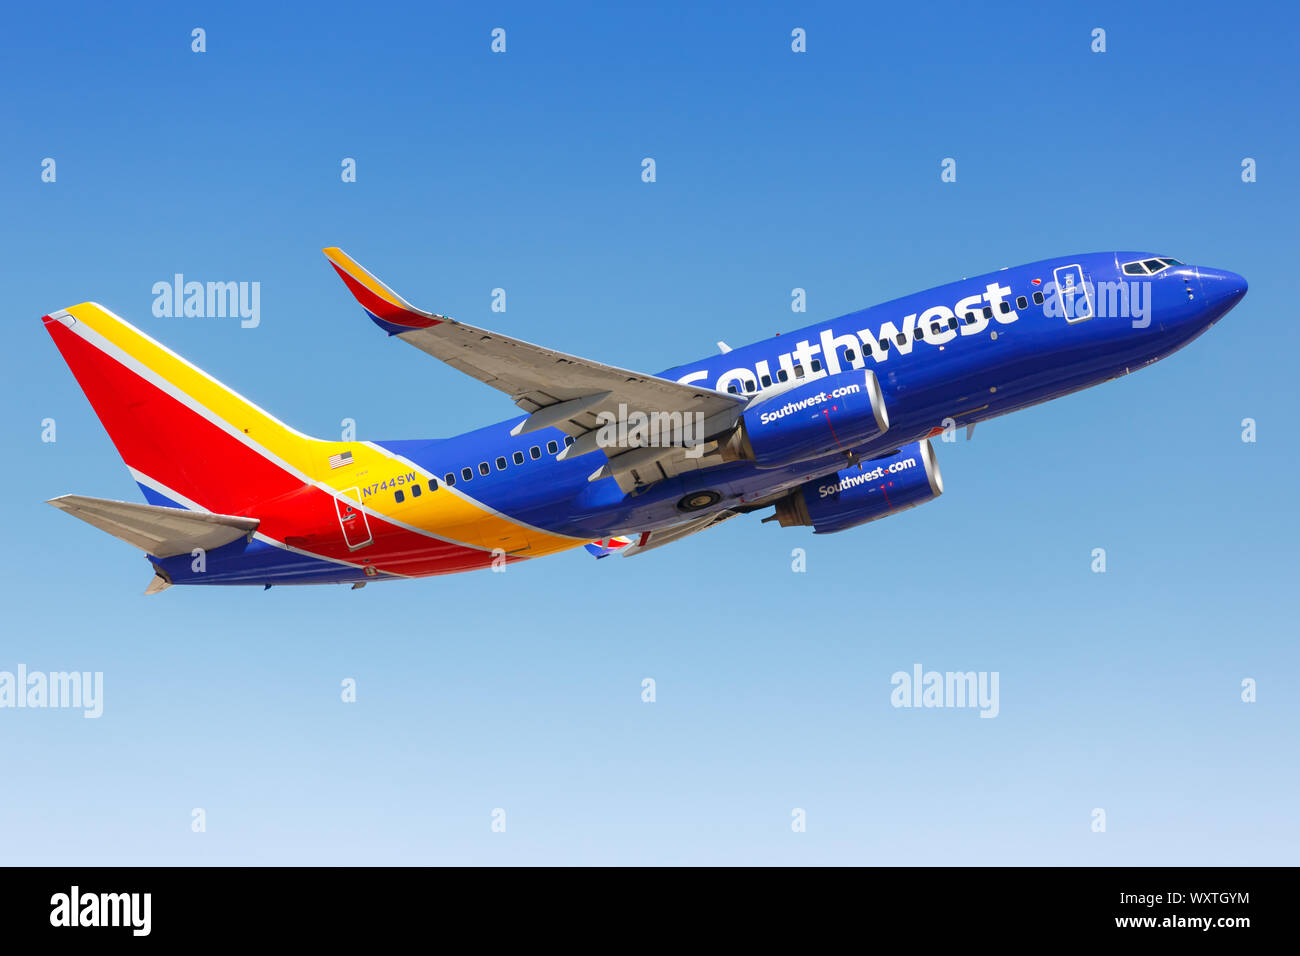 Phoenix, Arizona – April 8, 2019: Southwest Airlines Boeing 737-700 airplane at Phoenix Sky Harbor airport (PHX) in the United States. Stock Photo